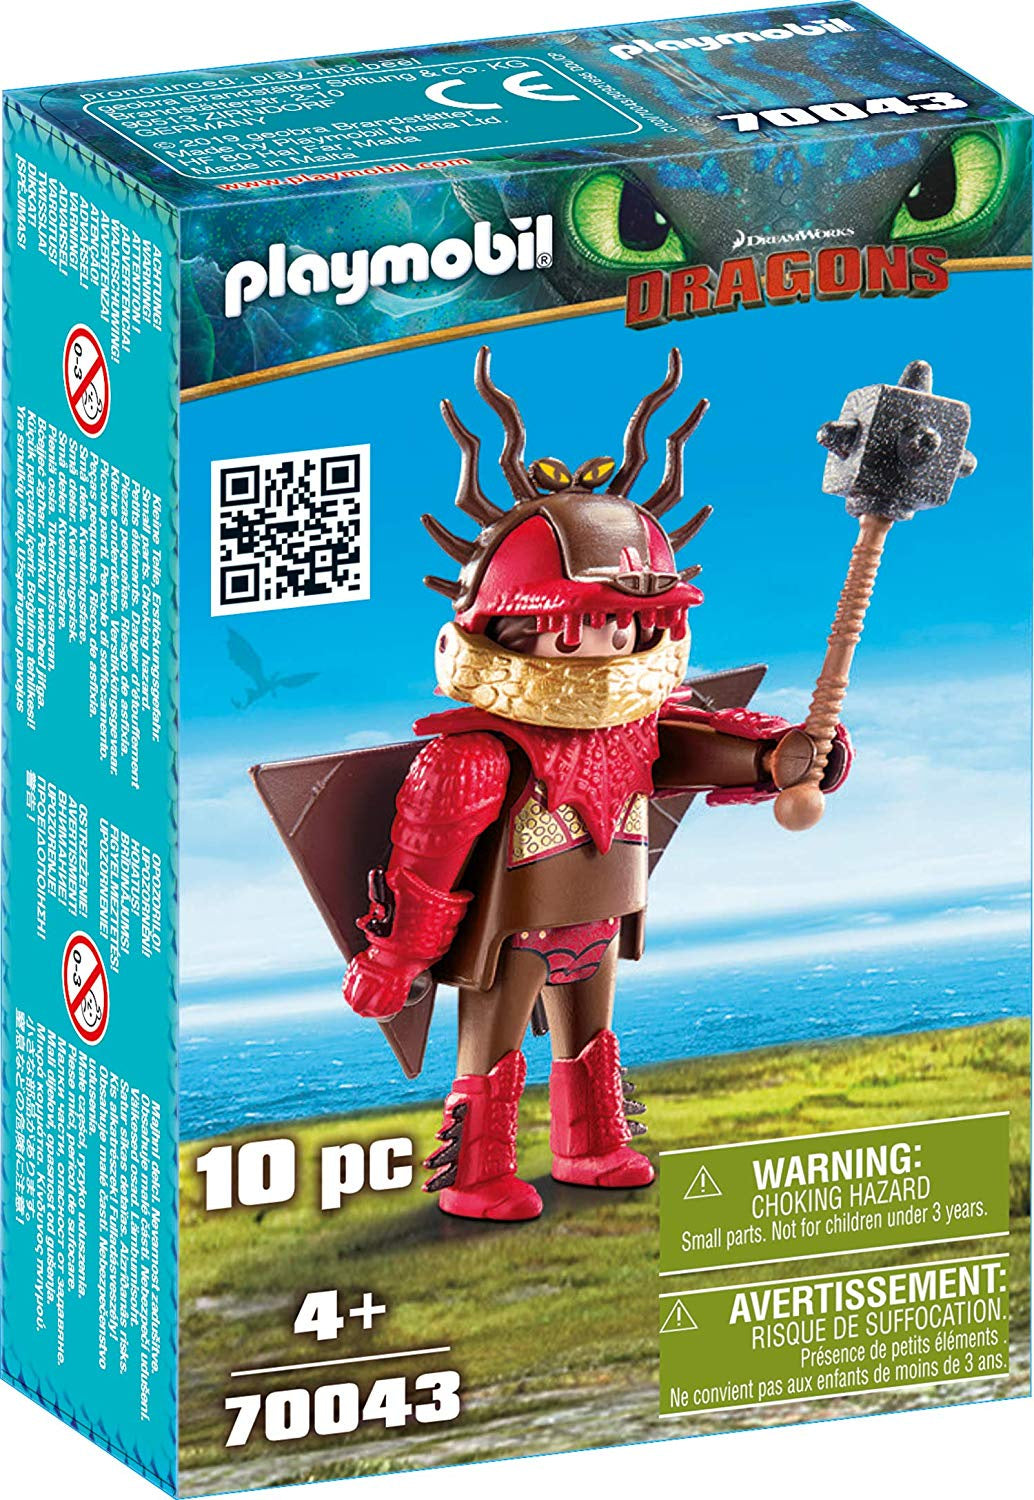 Playmobil Dreamworks Dragons 70043 Snotlout With Flight Suit